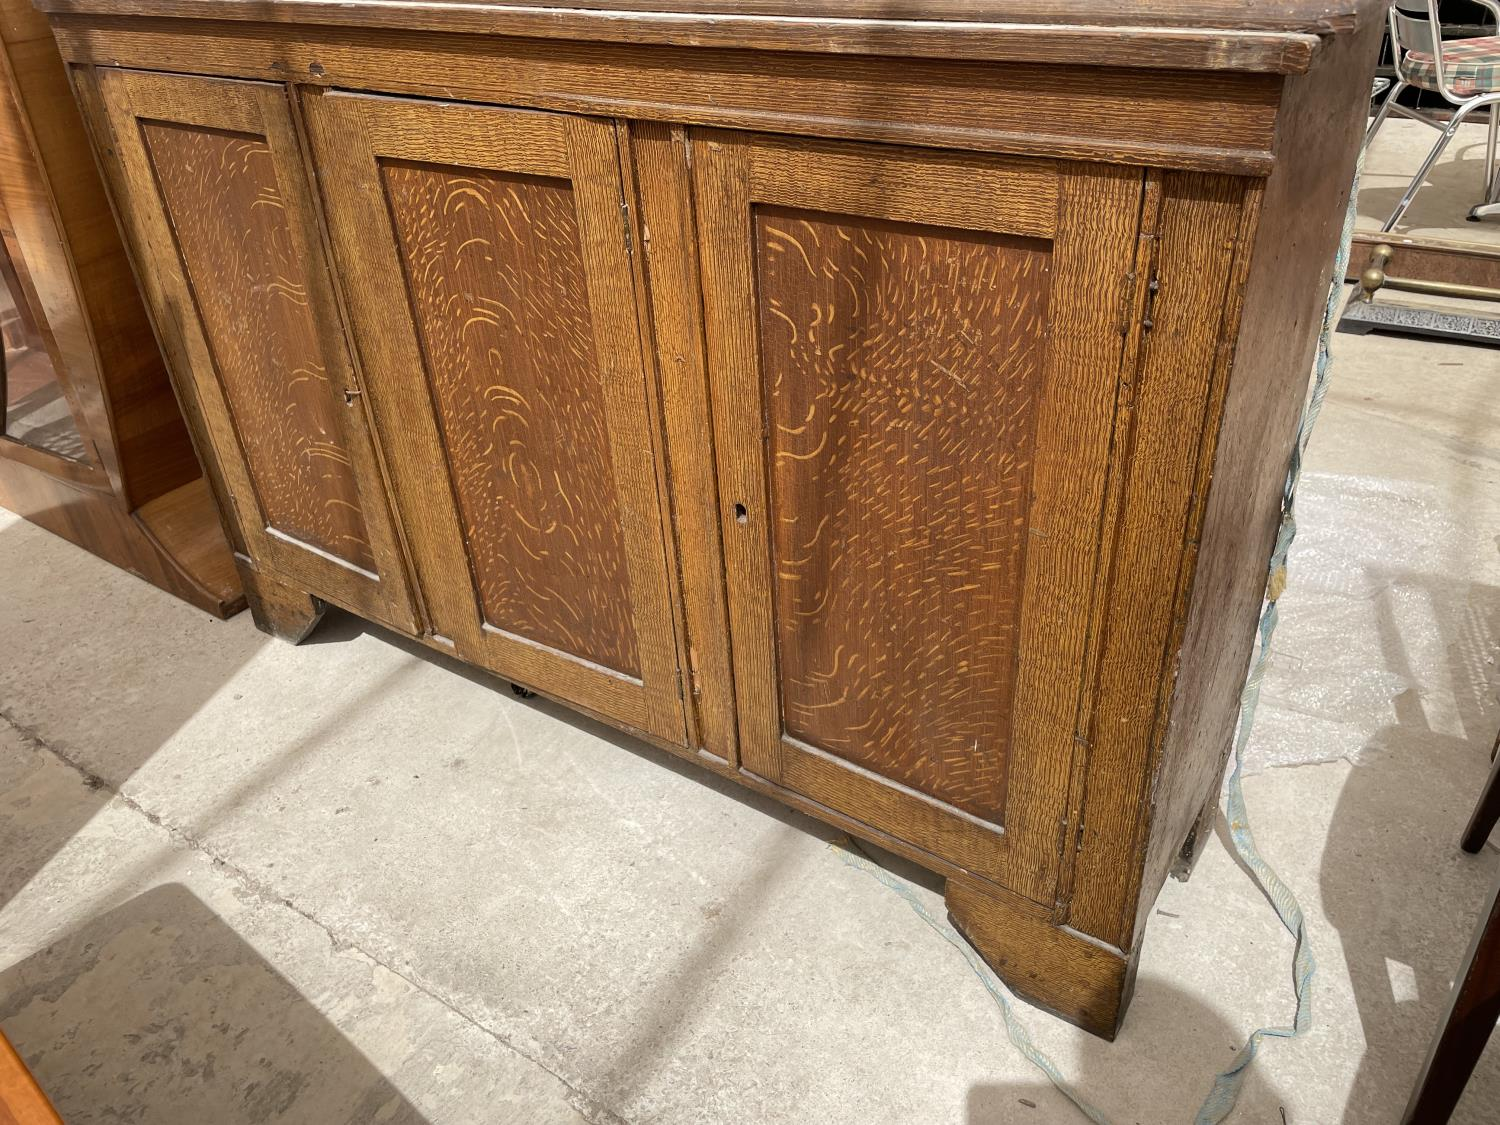 AN OAK BOOKCASE CABINET WITH TWO UPPER GLAZED DOORS AND THREE LOWER DOORS - Image 4 of 5